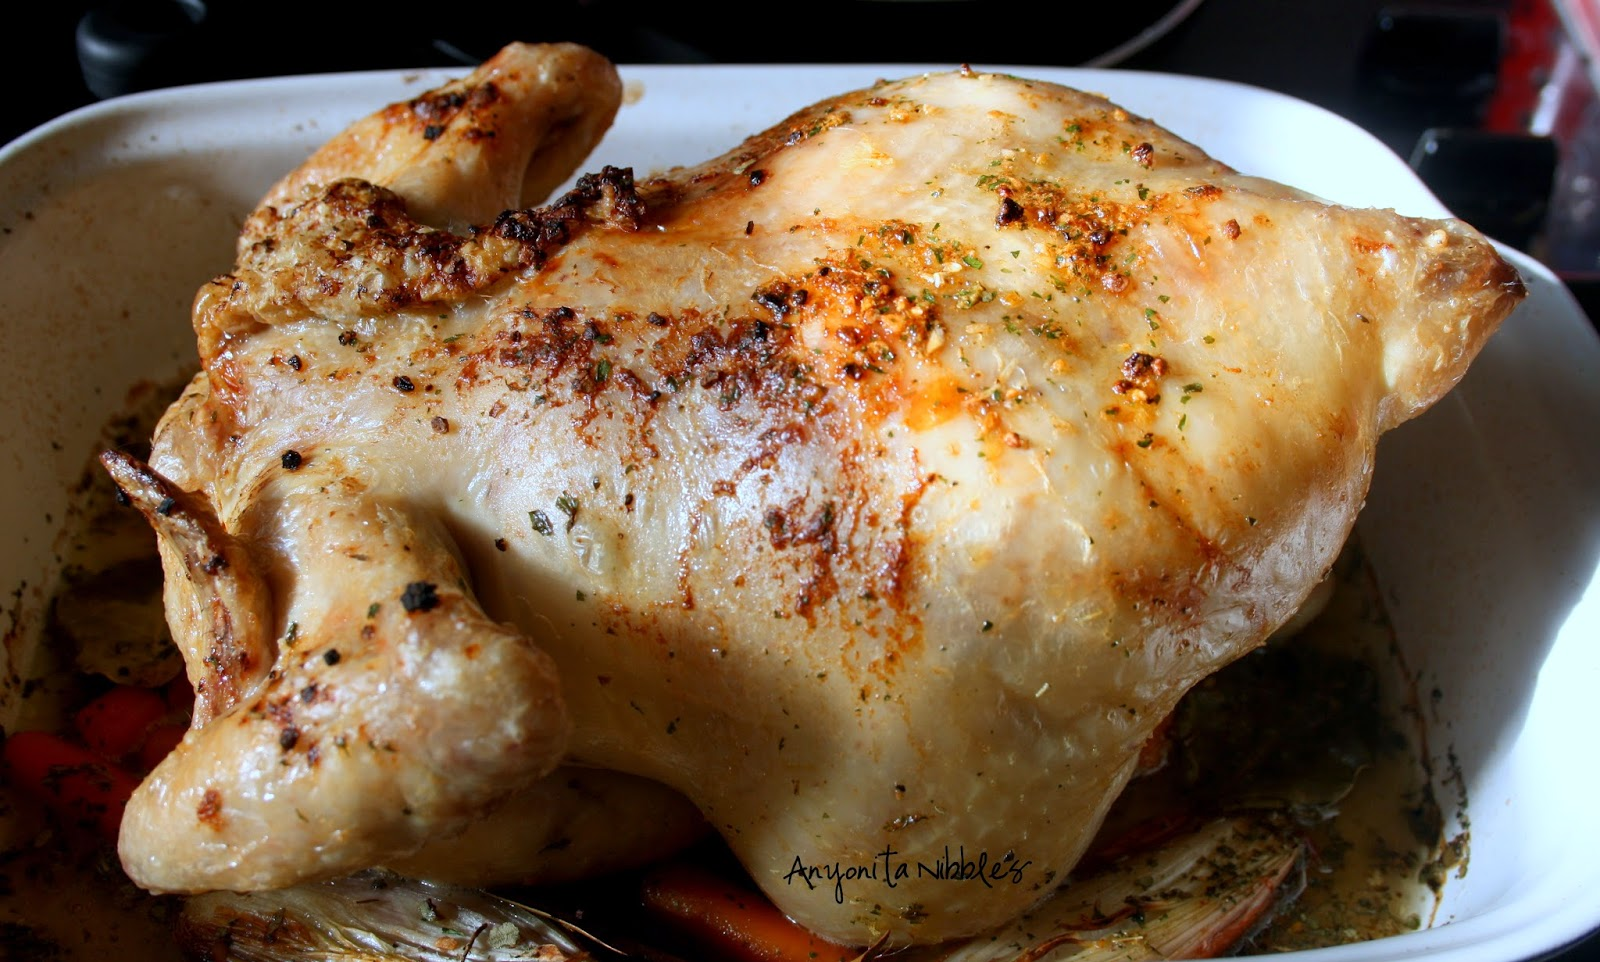 Partially cooked roast chicken | Anyonita Nibbles